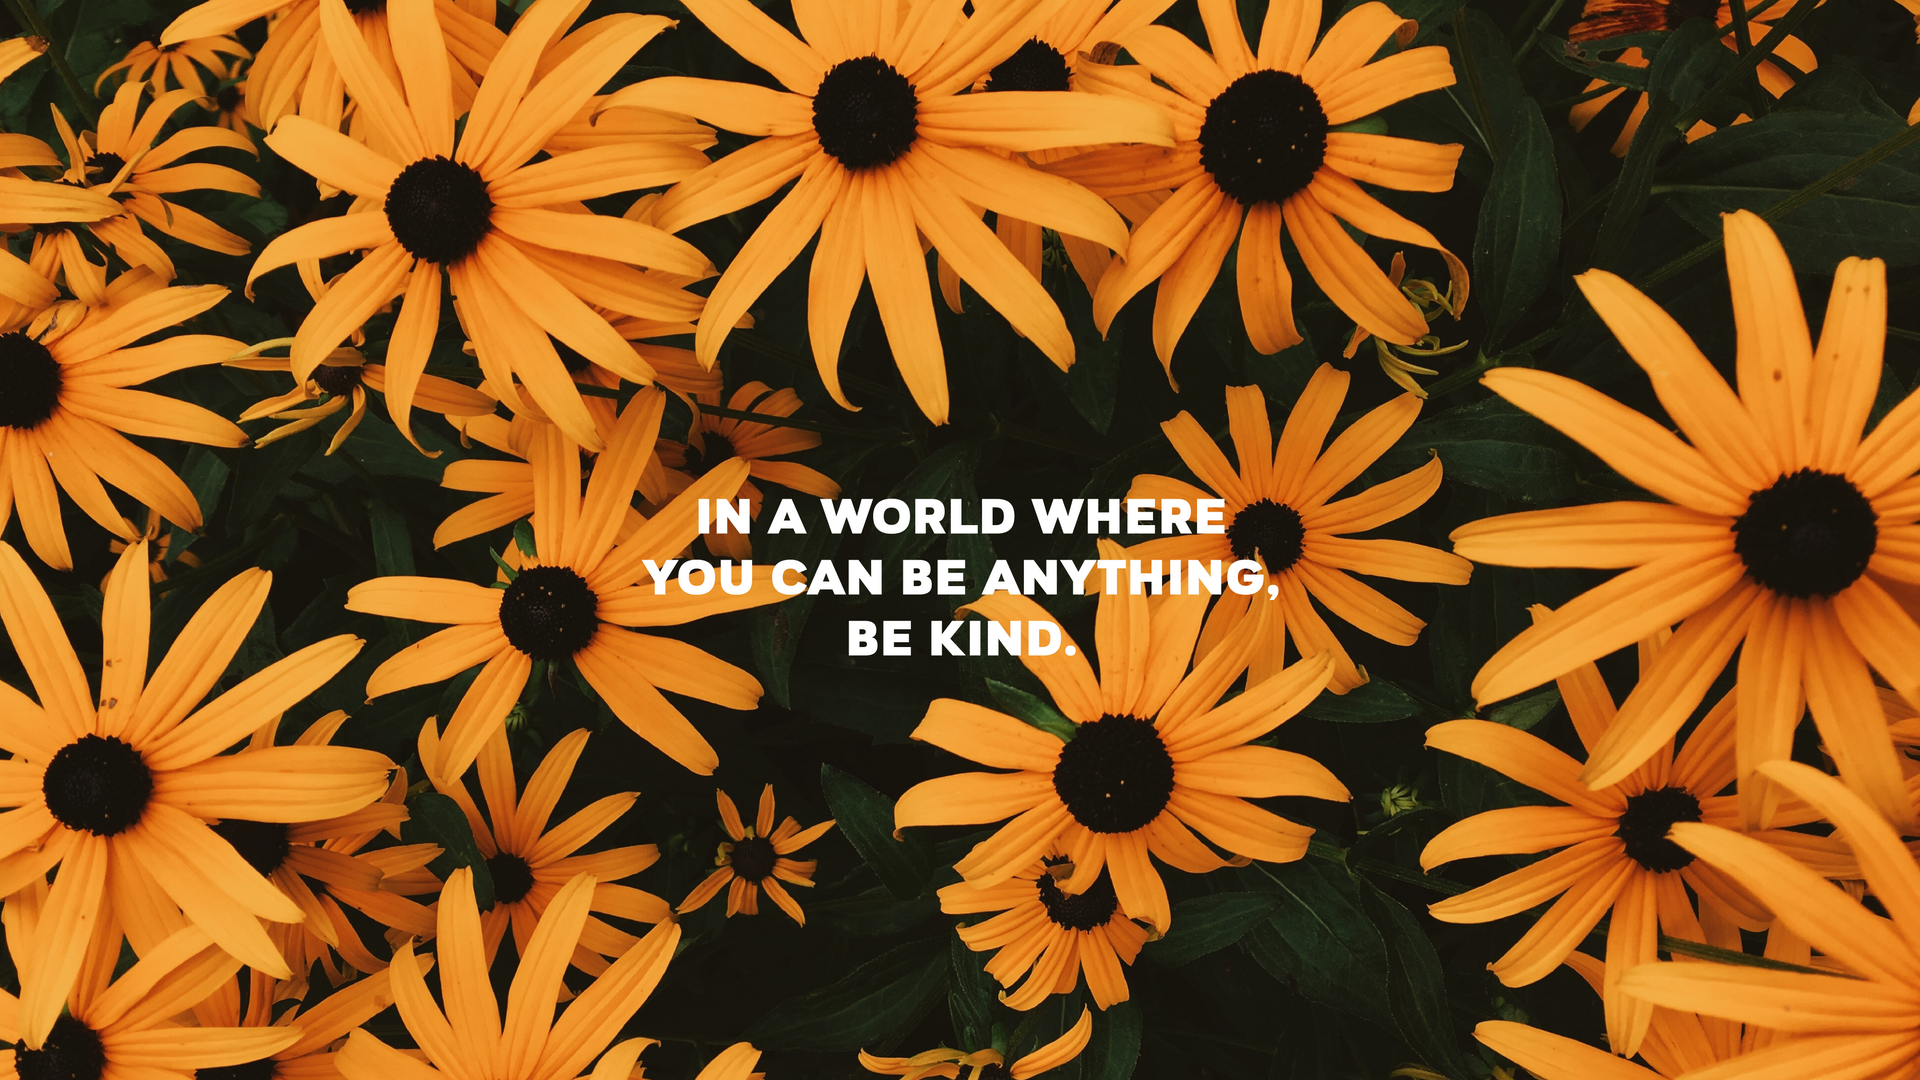 In a world where you can be anything_des